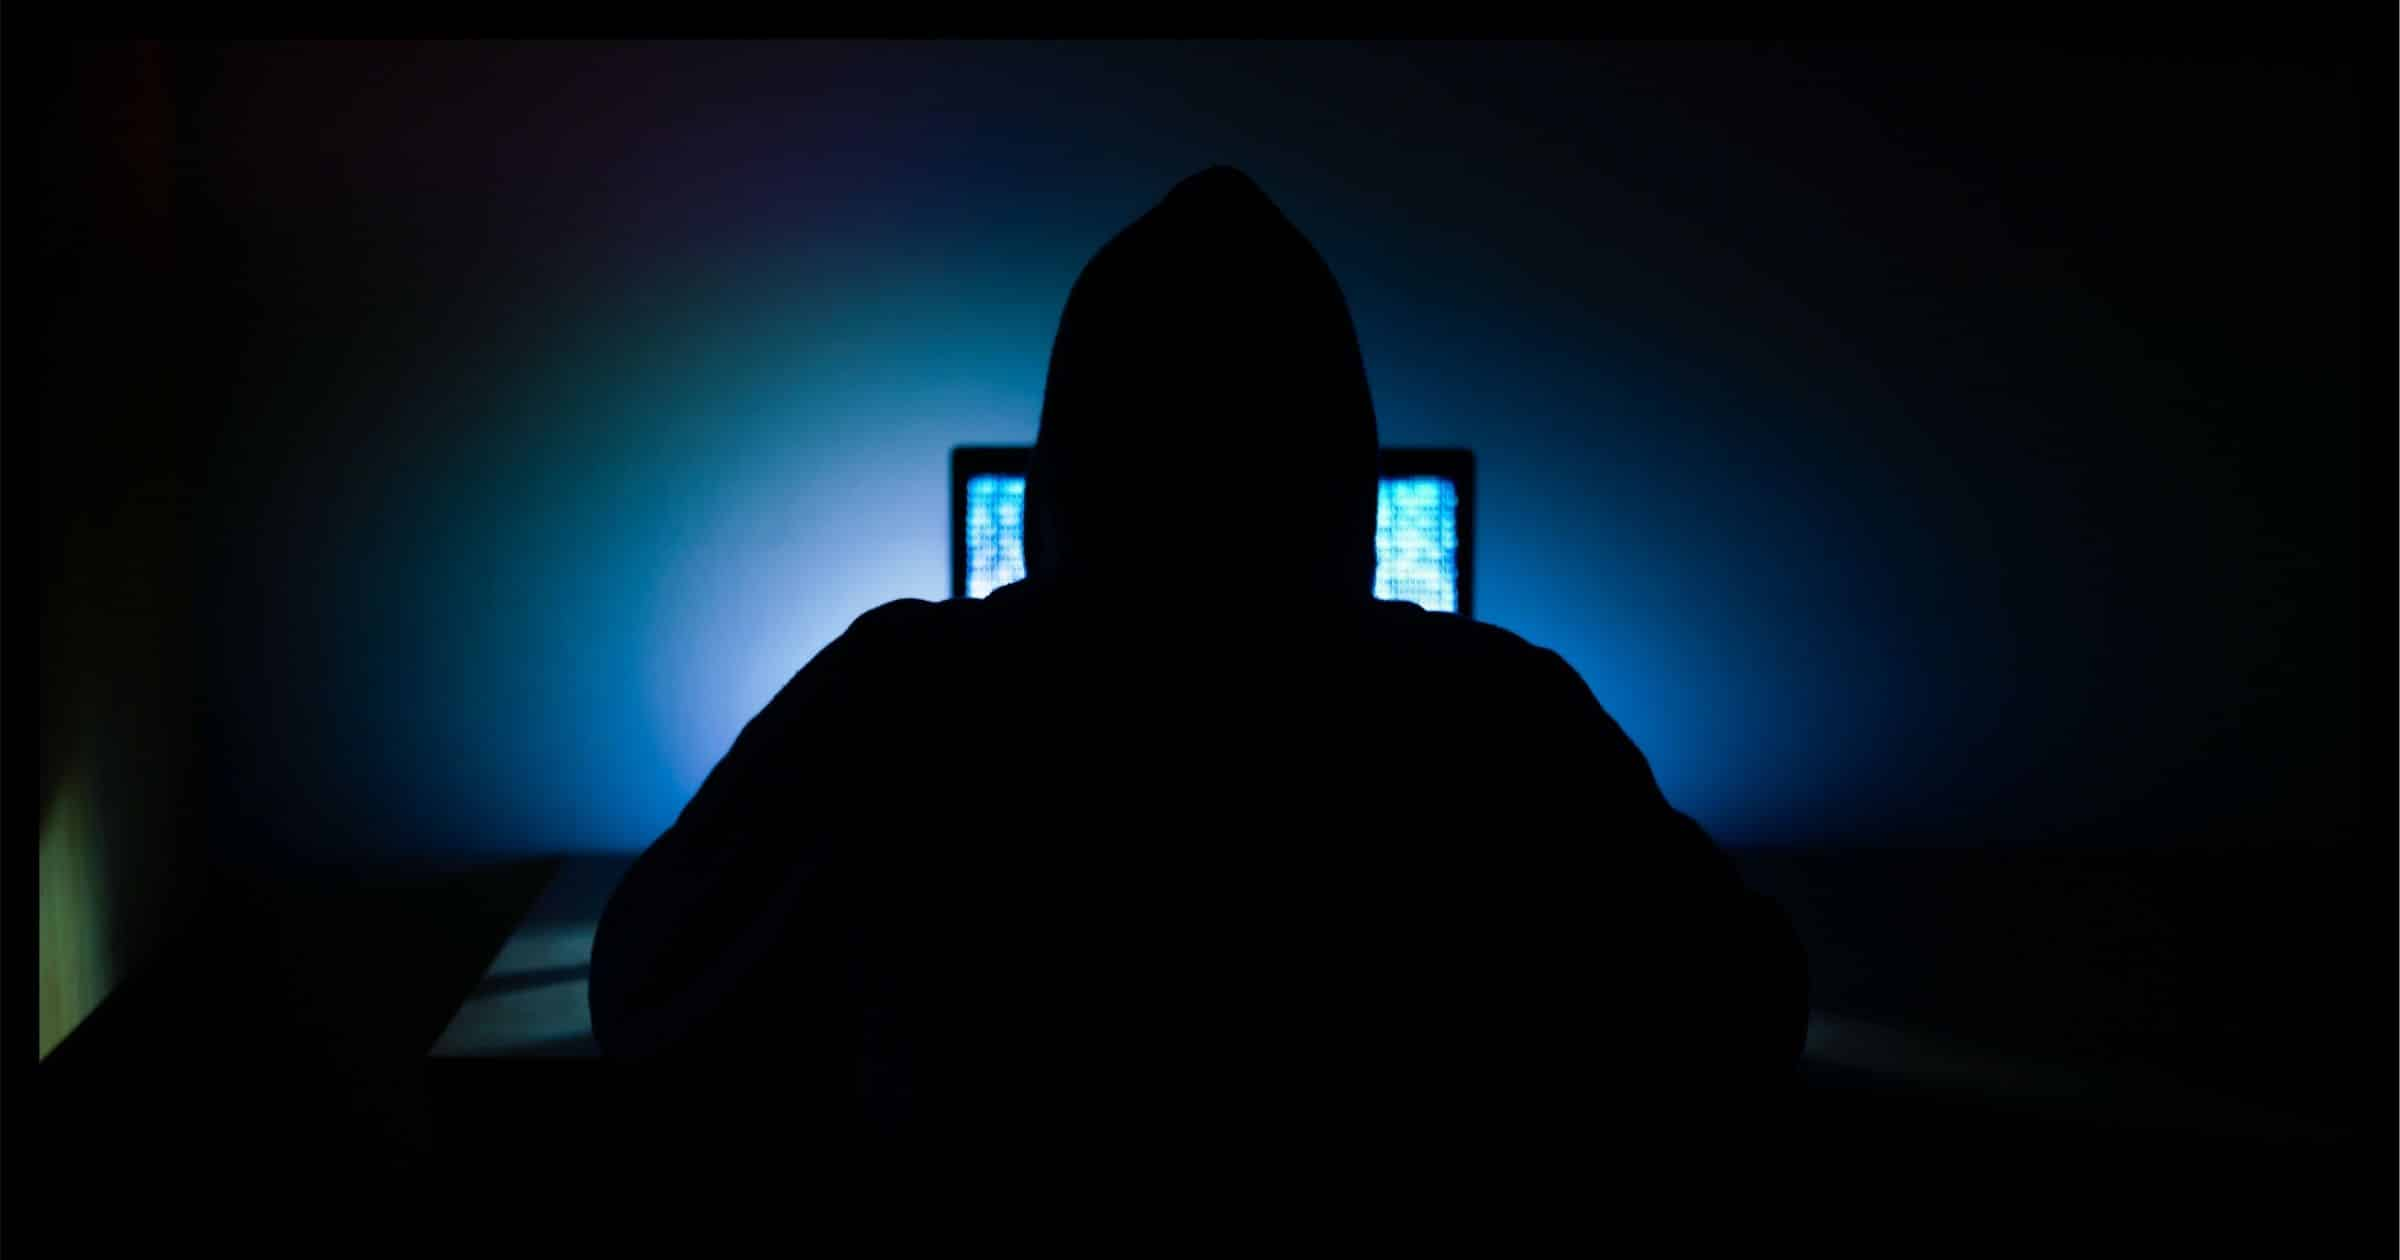 Sereotypical Hooded Hacker Image